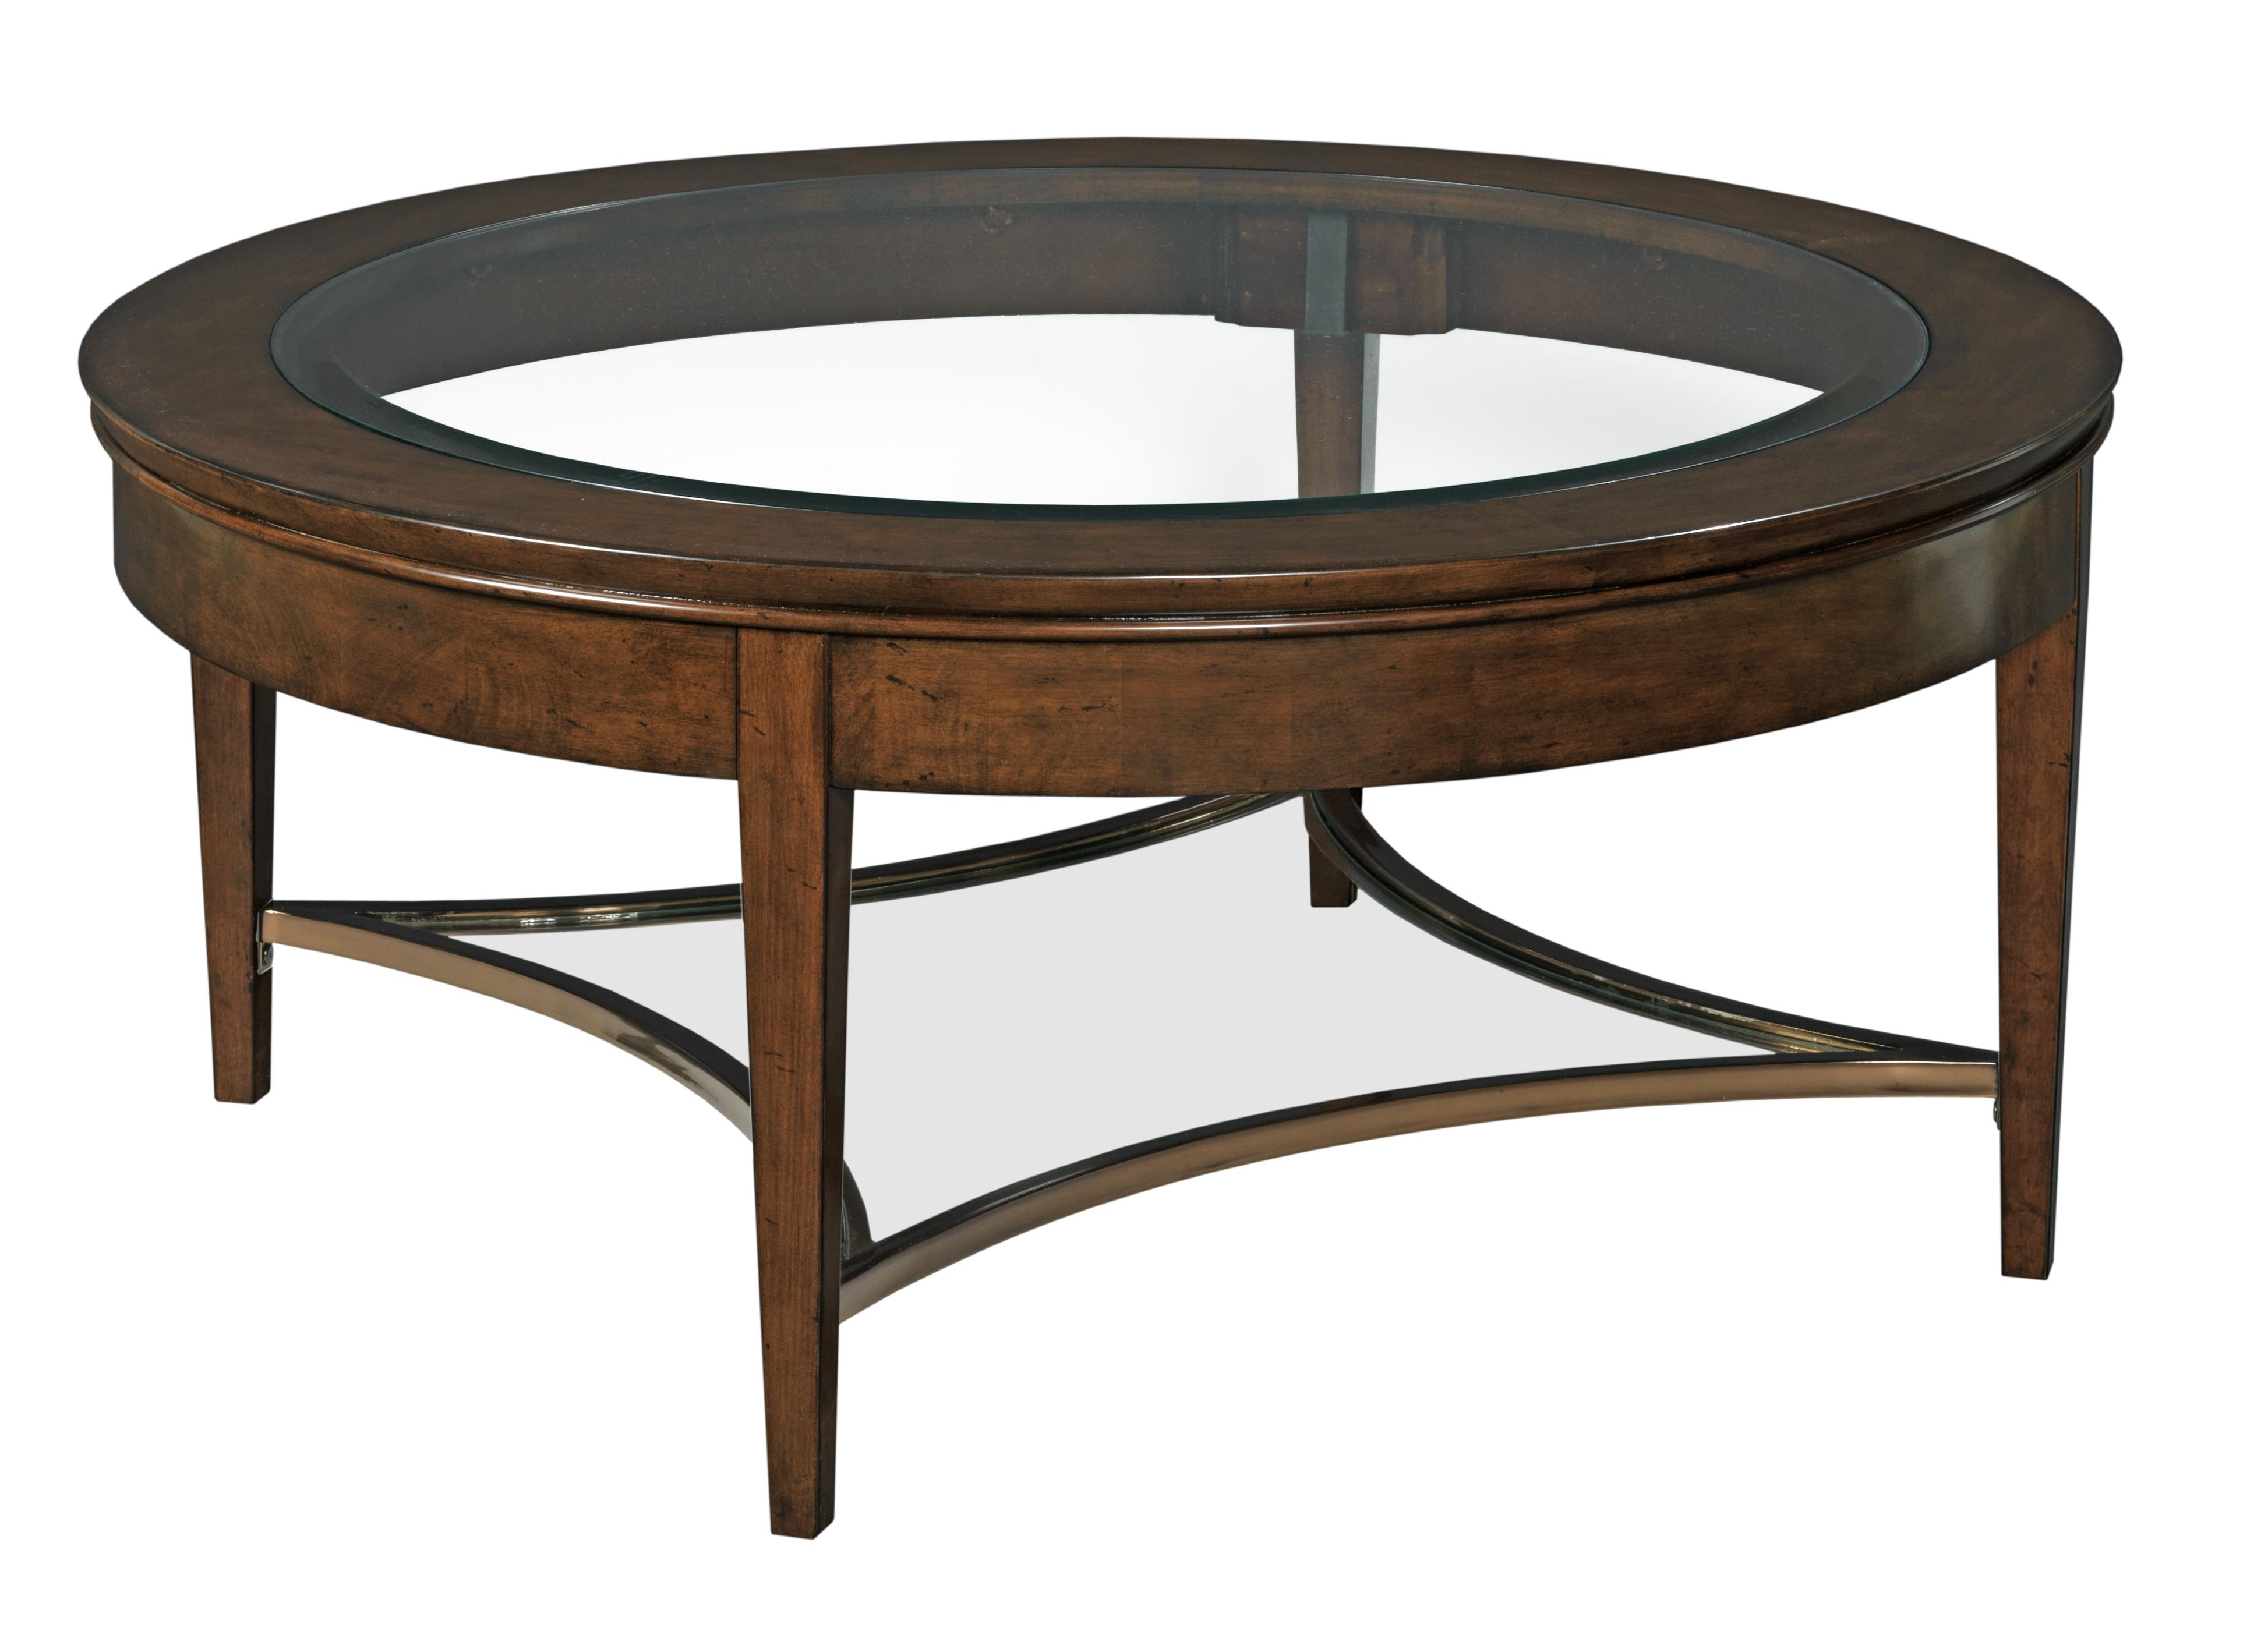 Elise Aura Cocktail Table by Kincaid Furniture at Northeast Factory Direct